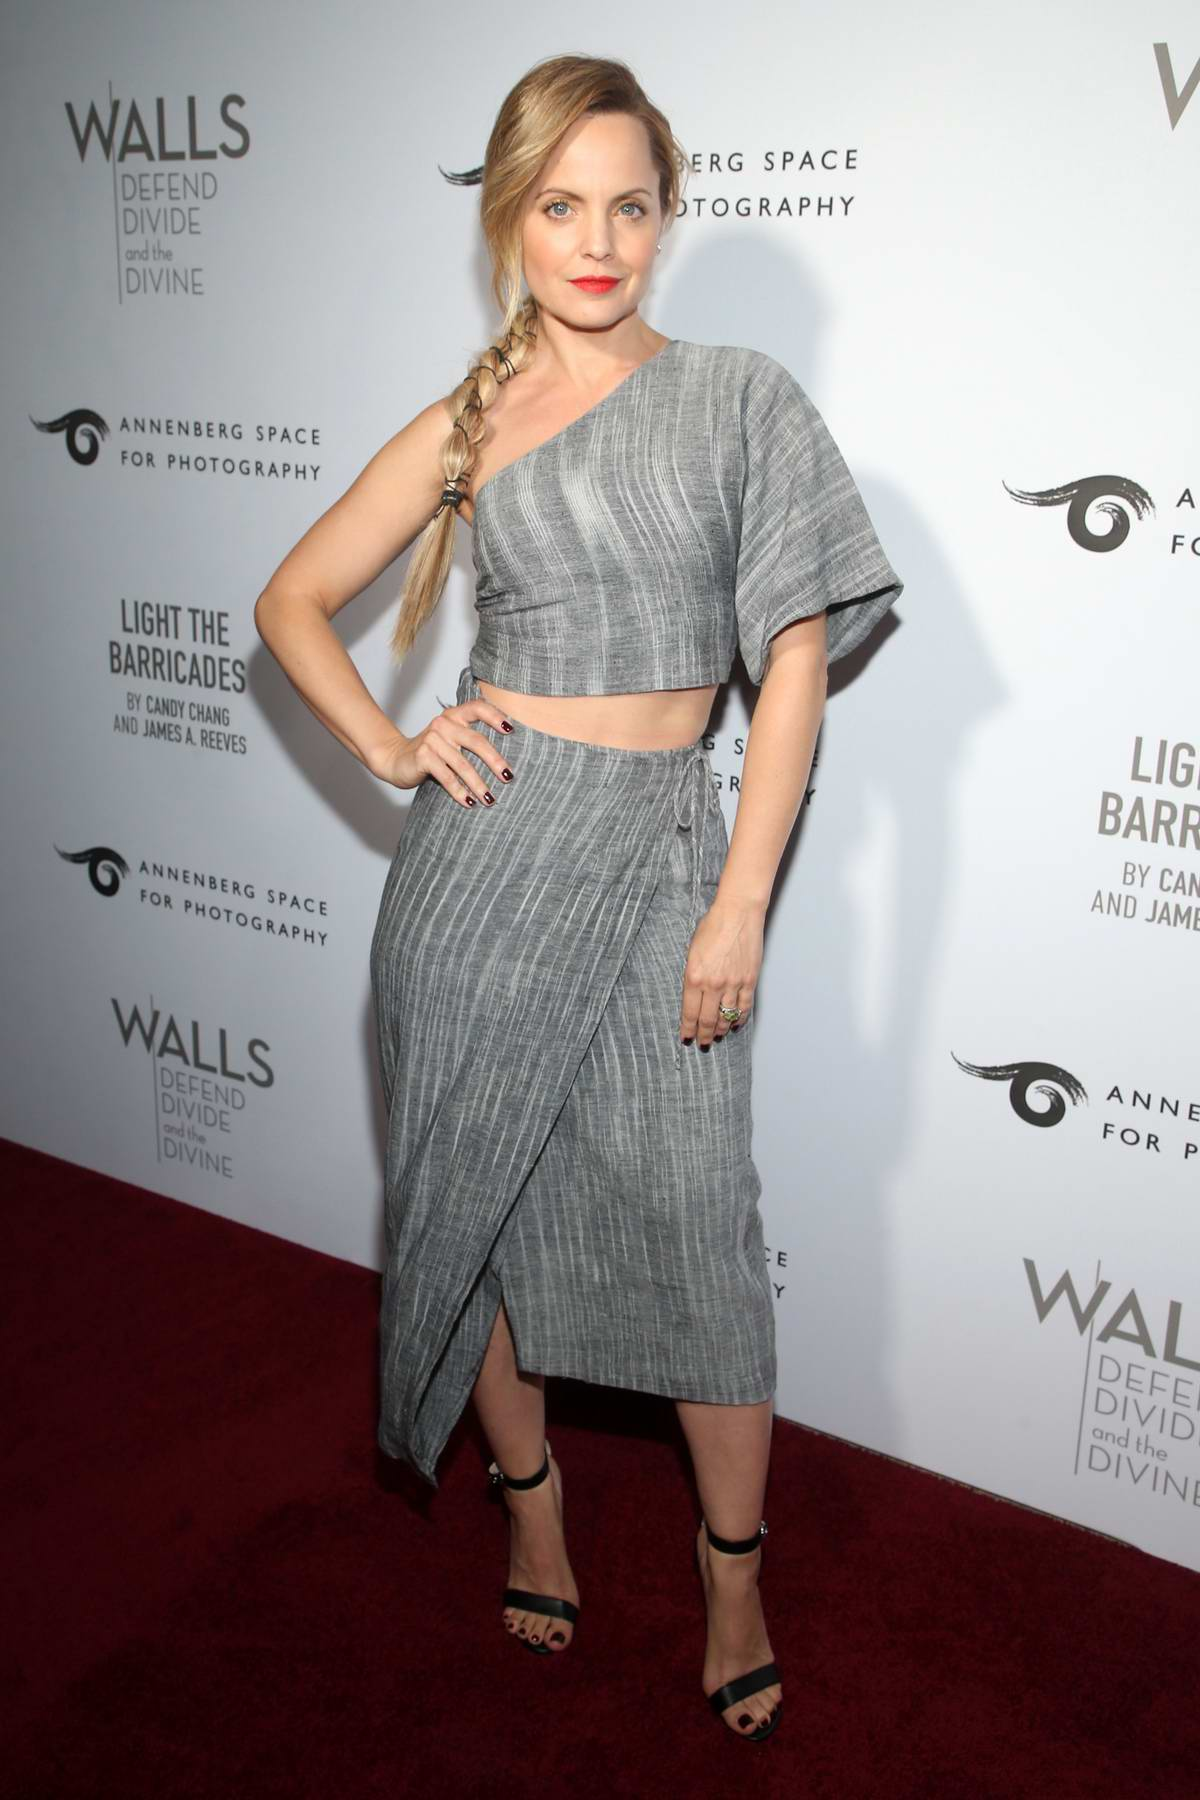 Mena Suvari attends the Annenberg Space For Photography's WALL's: Defend, Divide And The Divine Exhibit Opening in Century City, California